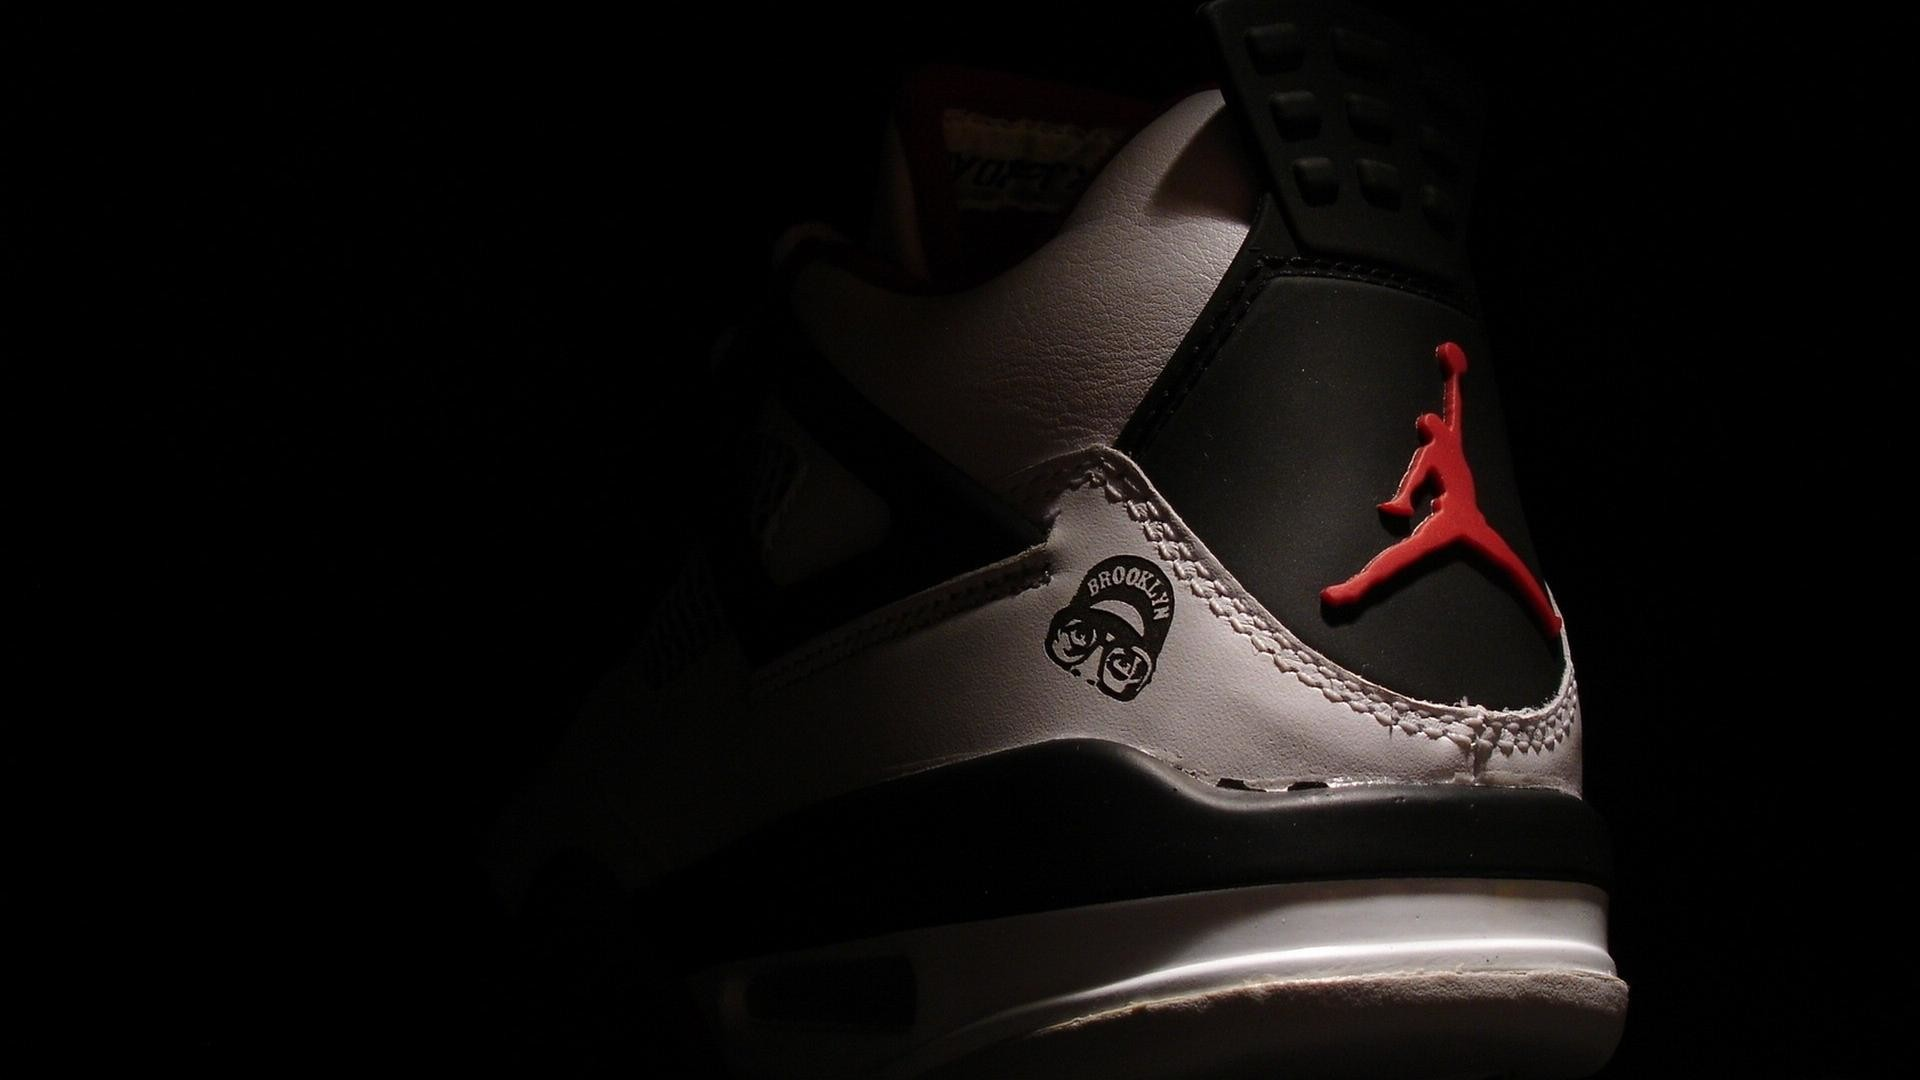 1920x1080 air jordan jordan shoe hd wallpapers michael michael jordan air  shoes .